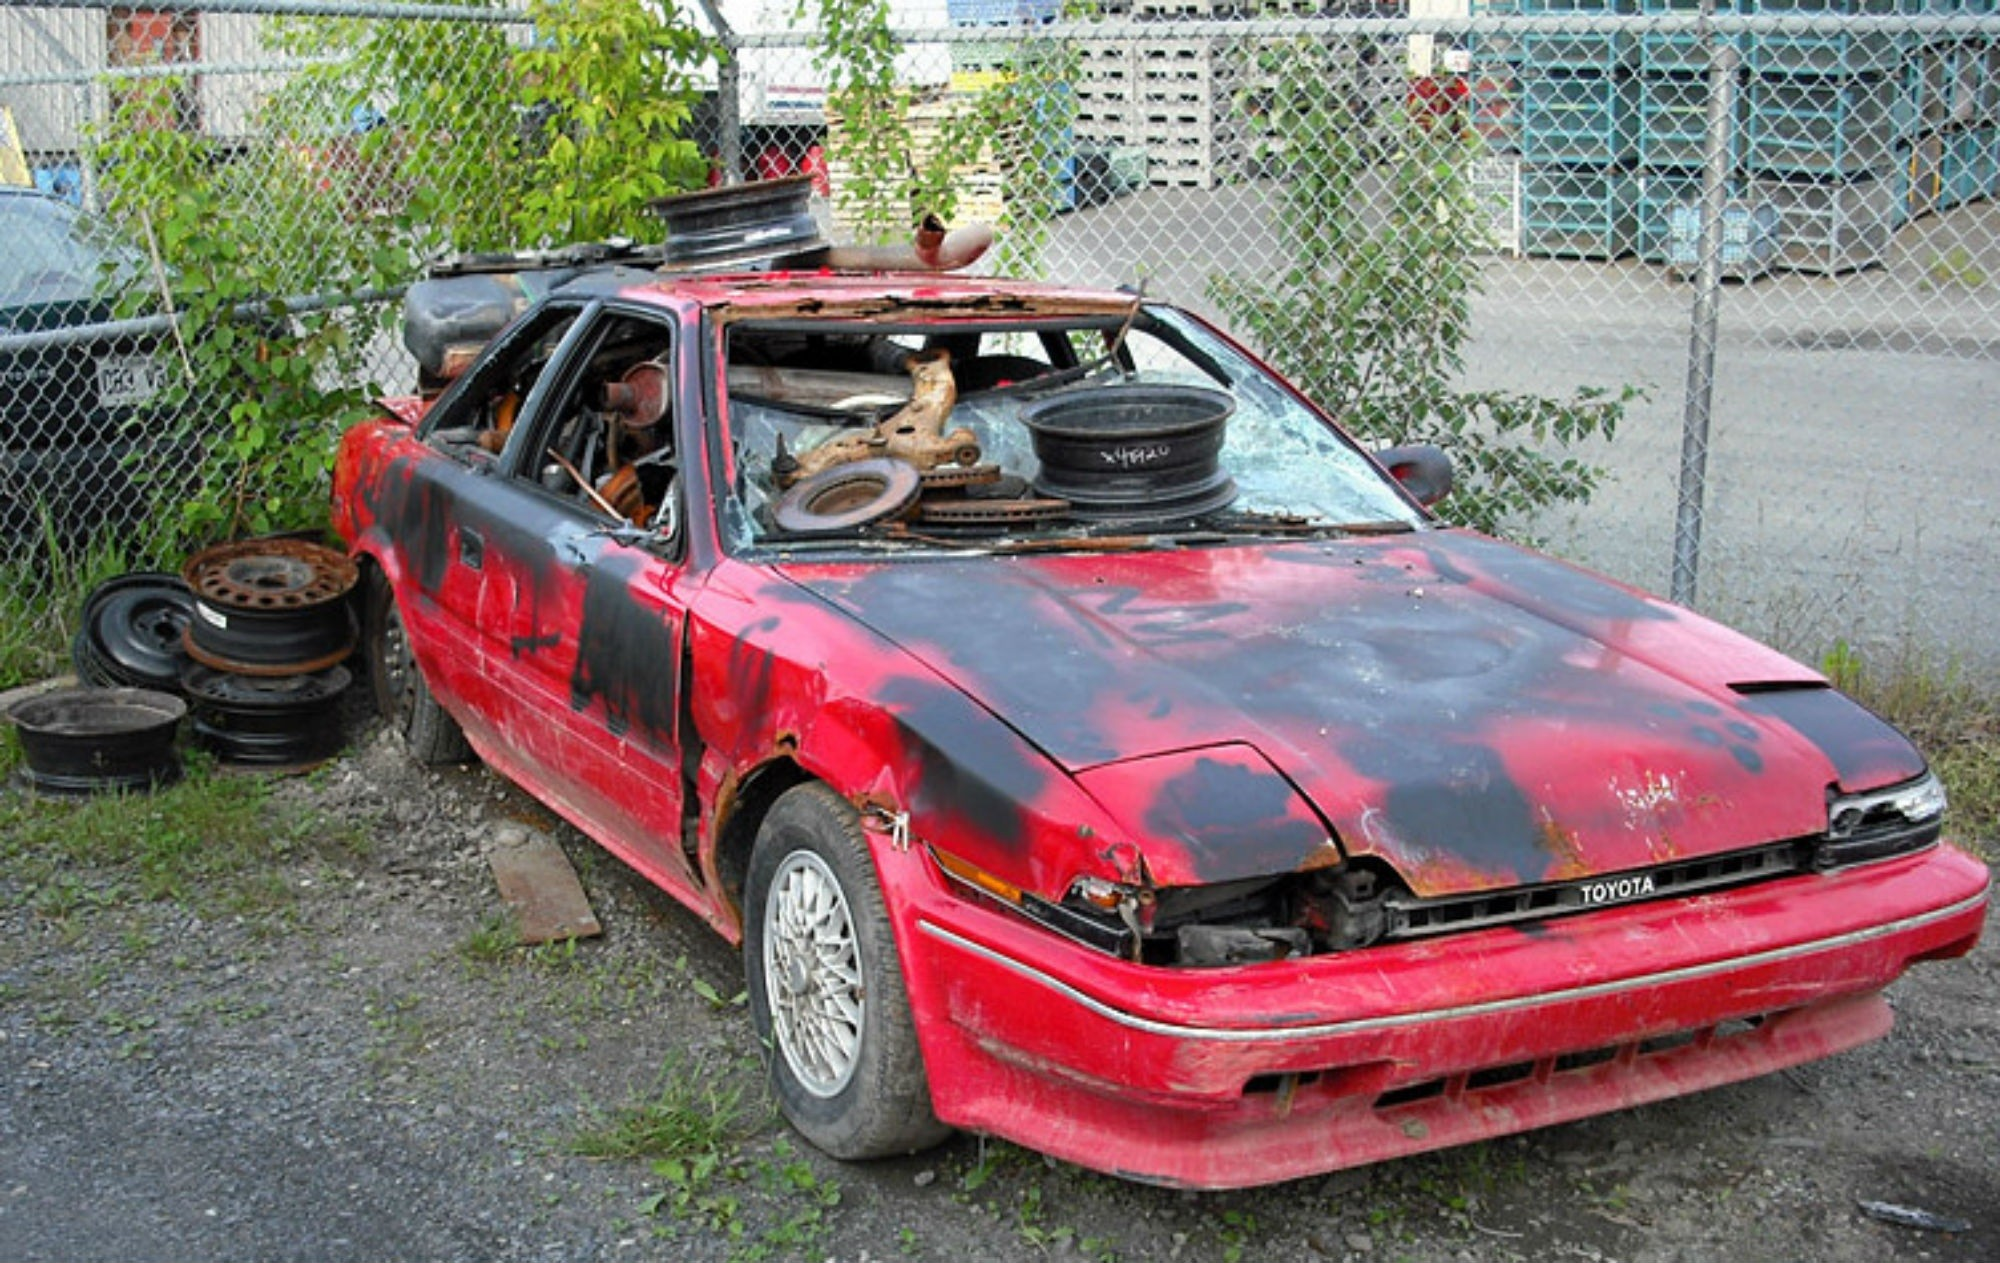 We Buy Junk Cars Near You! Cash For Junk Cars in Lancaster, PA!